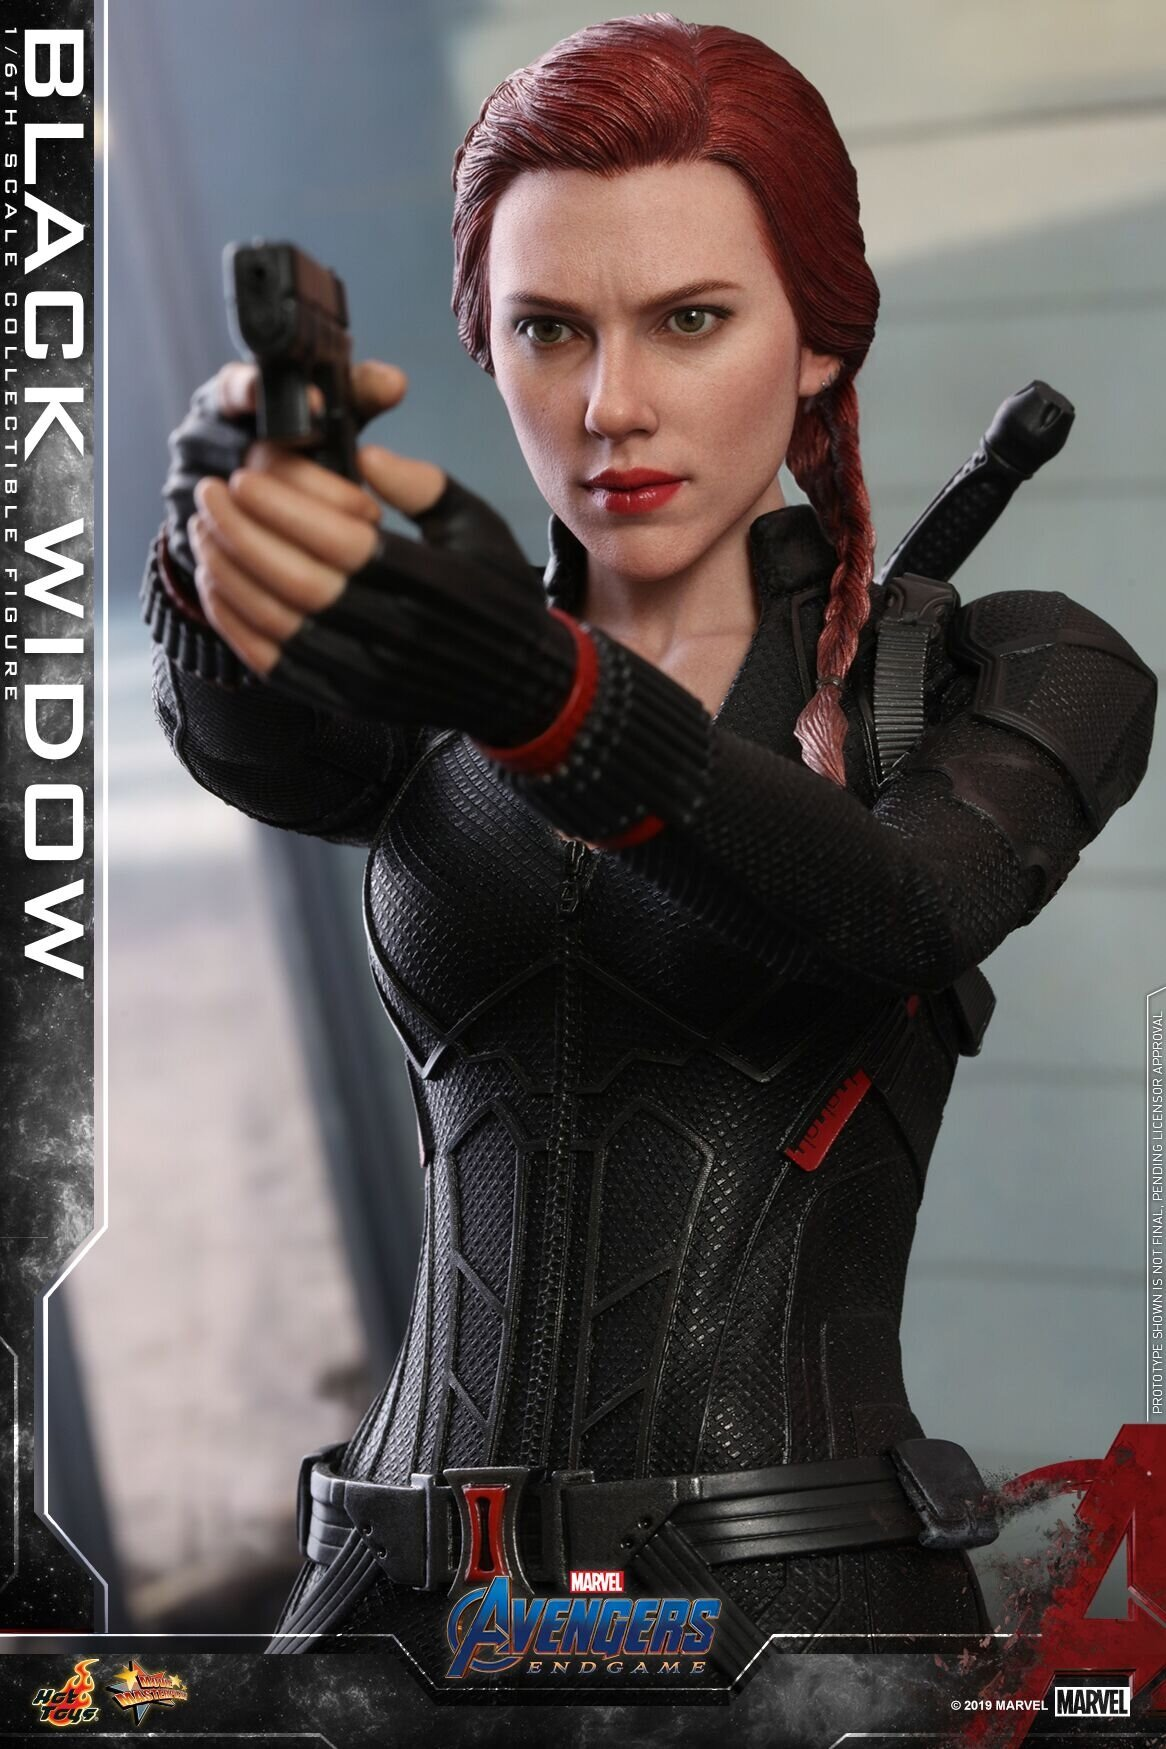 [Hot Toys] 어벤져스 : 엔드게임 블랙 위도우 MMS533 - 1/6th scale Black Widow Collectible Figure